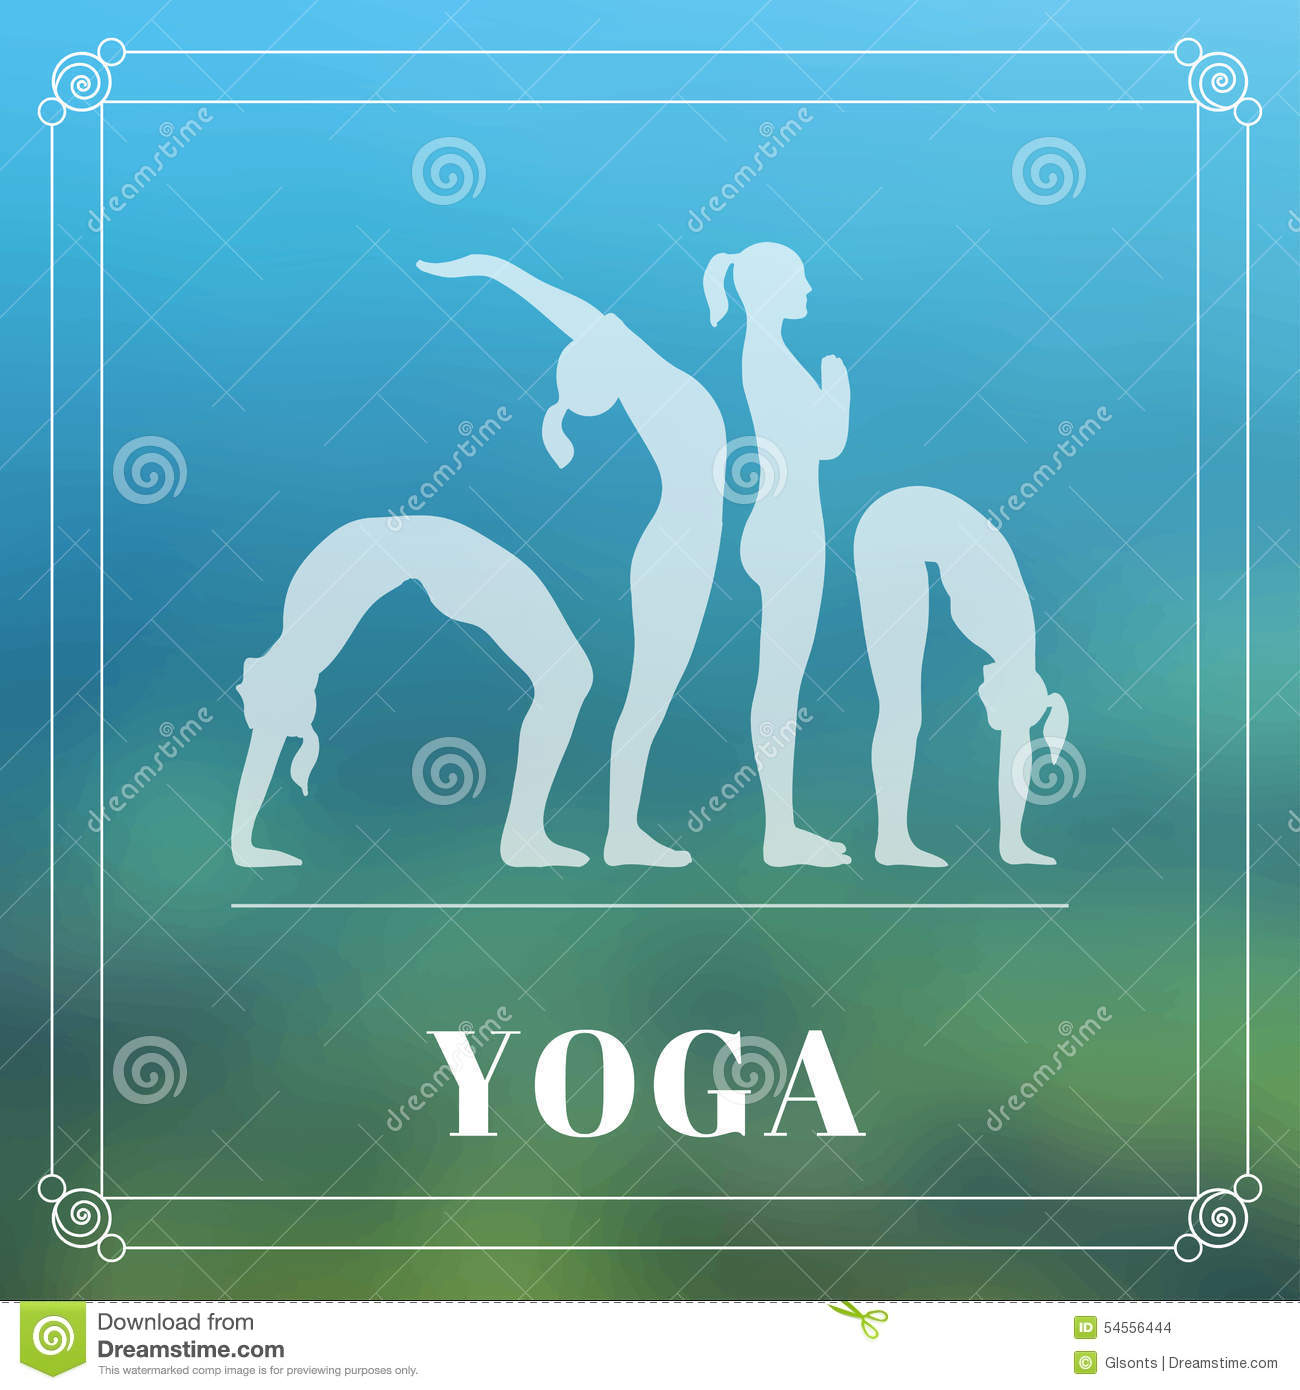 Yoga Poster With Silhouettes Of Women In The Poses On A Photo Blurred Background